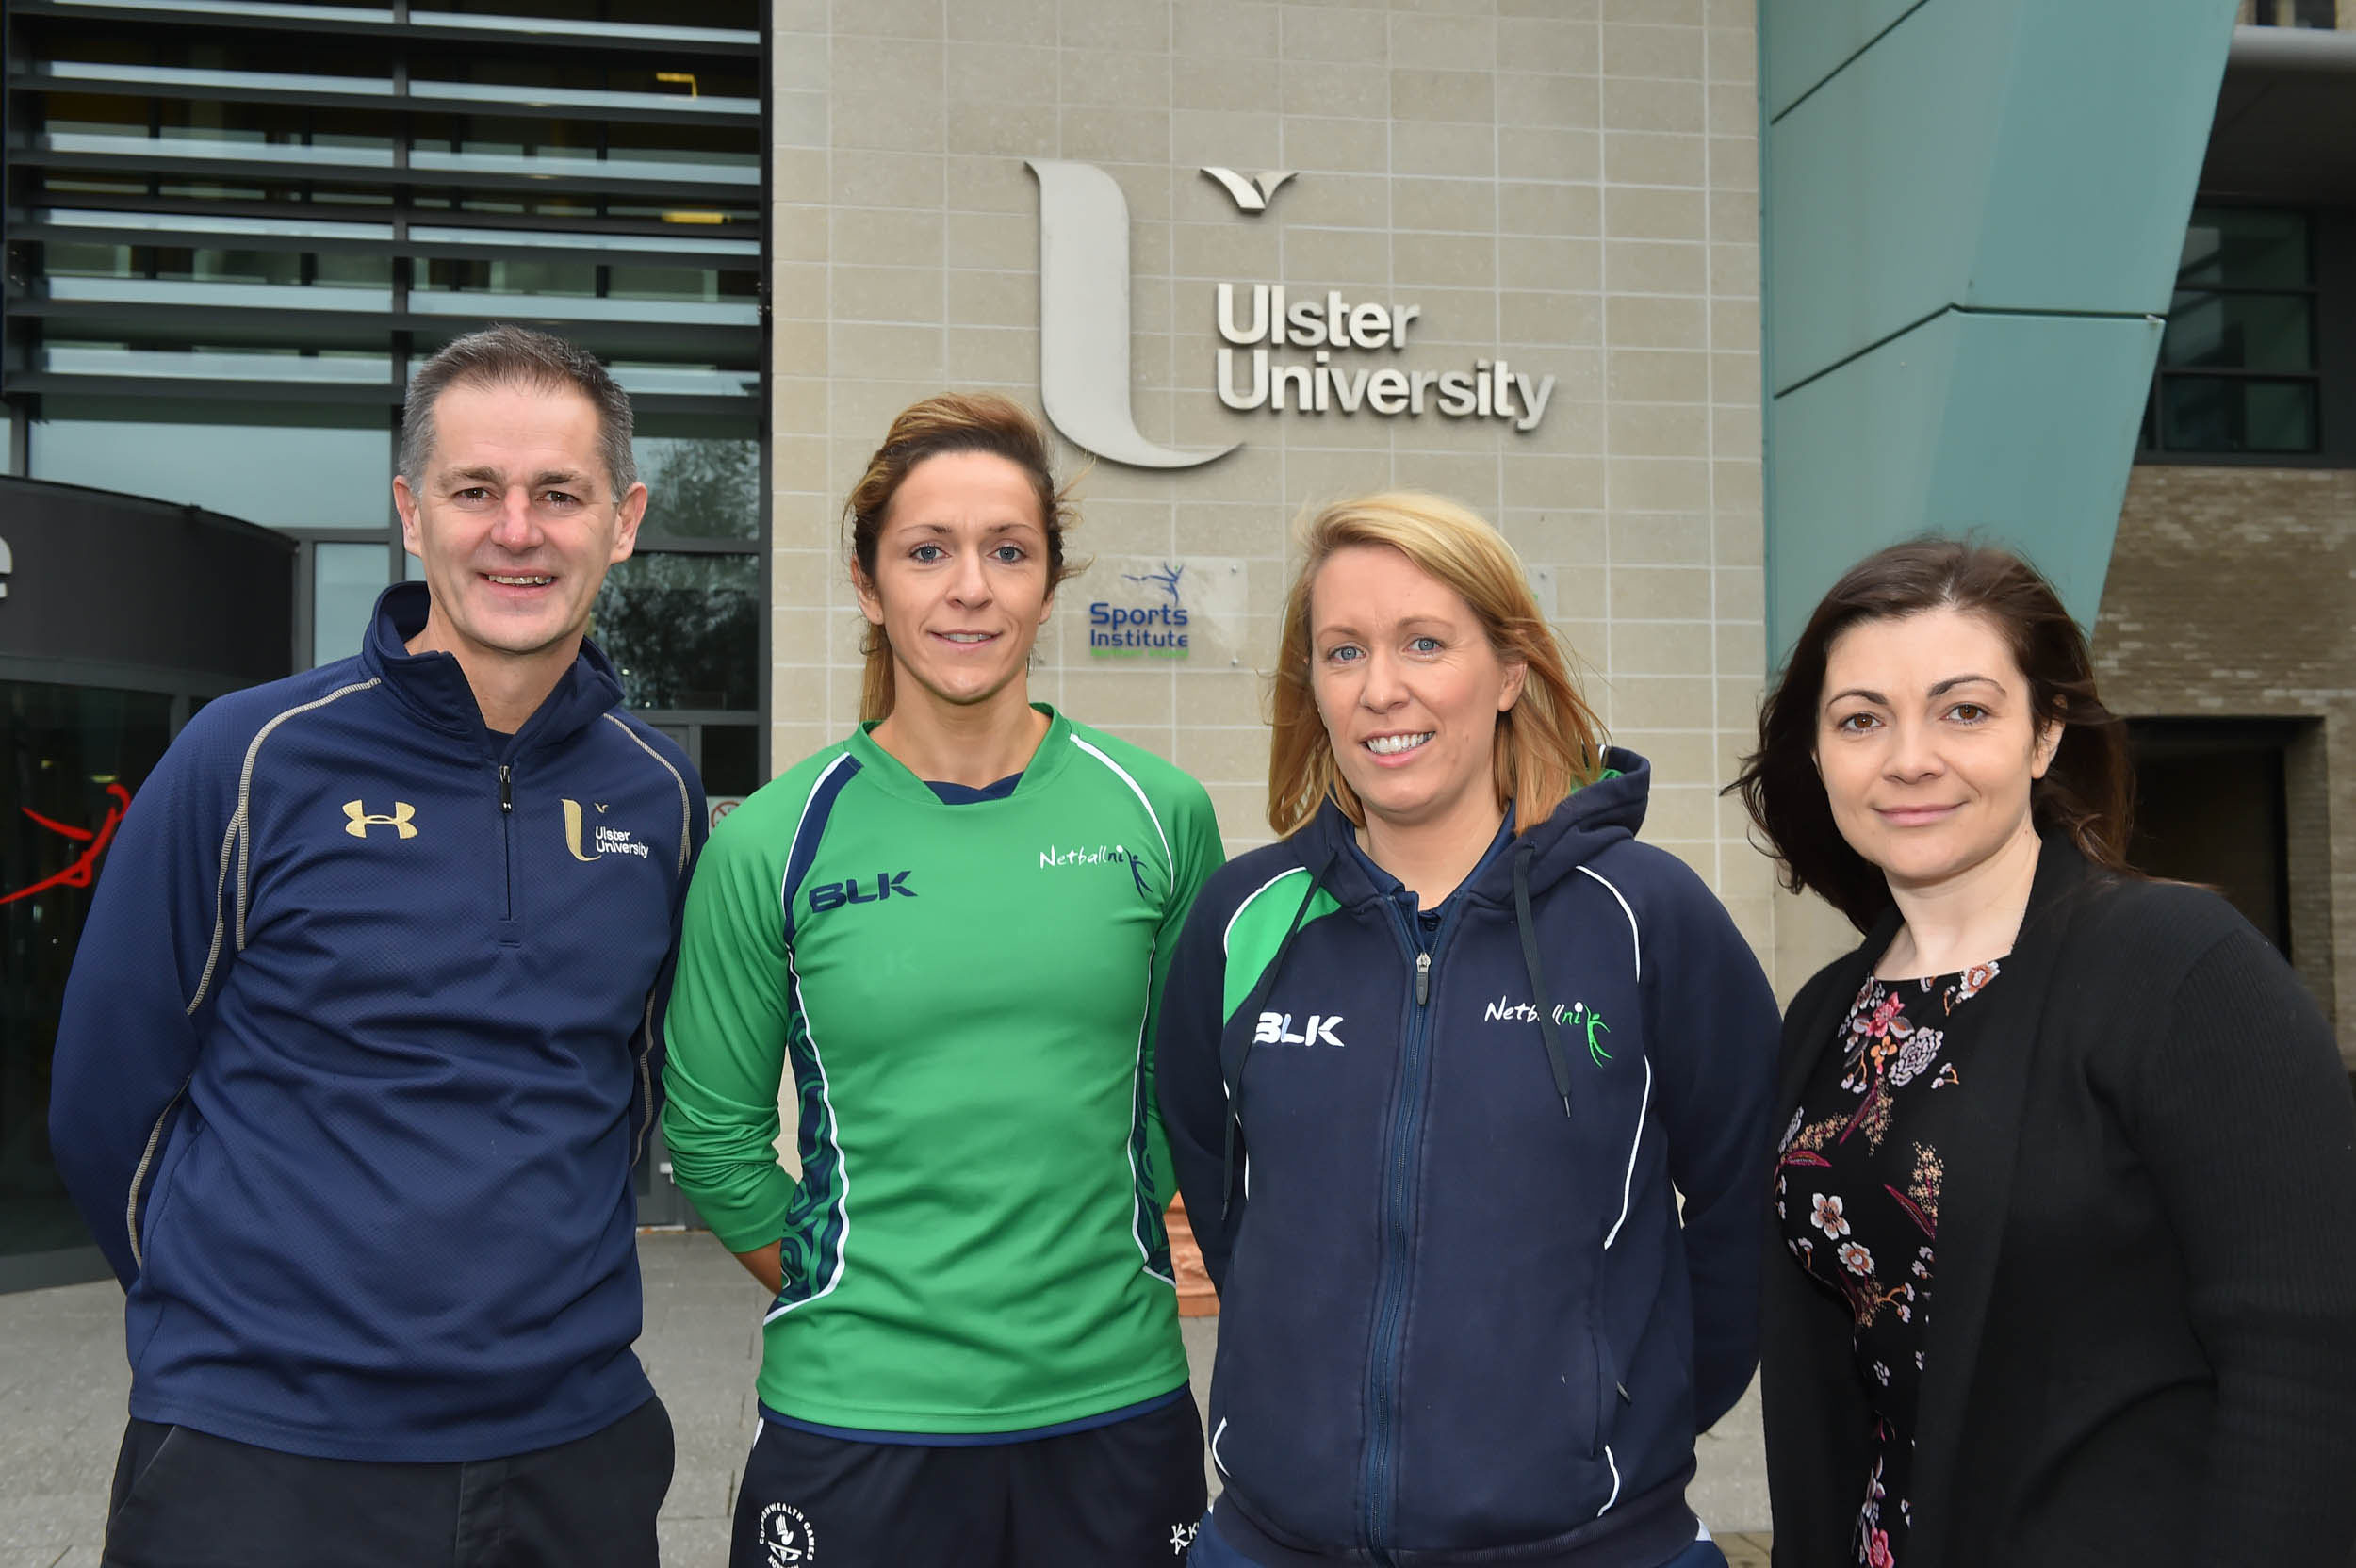 Ulster University partners with Netball Northern Ireland as they go for gold